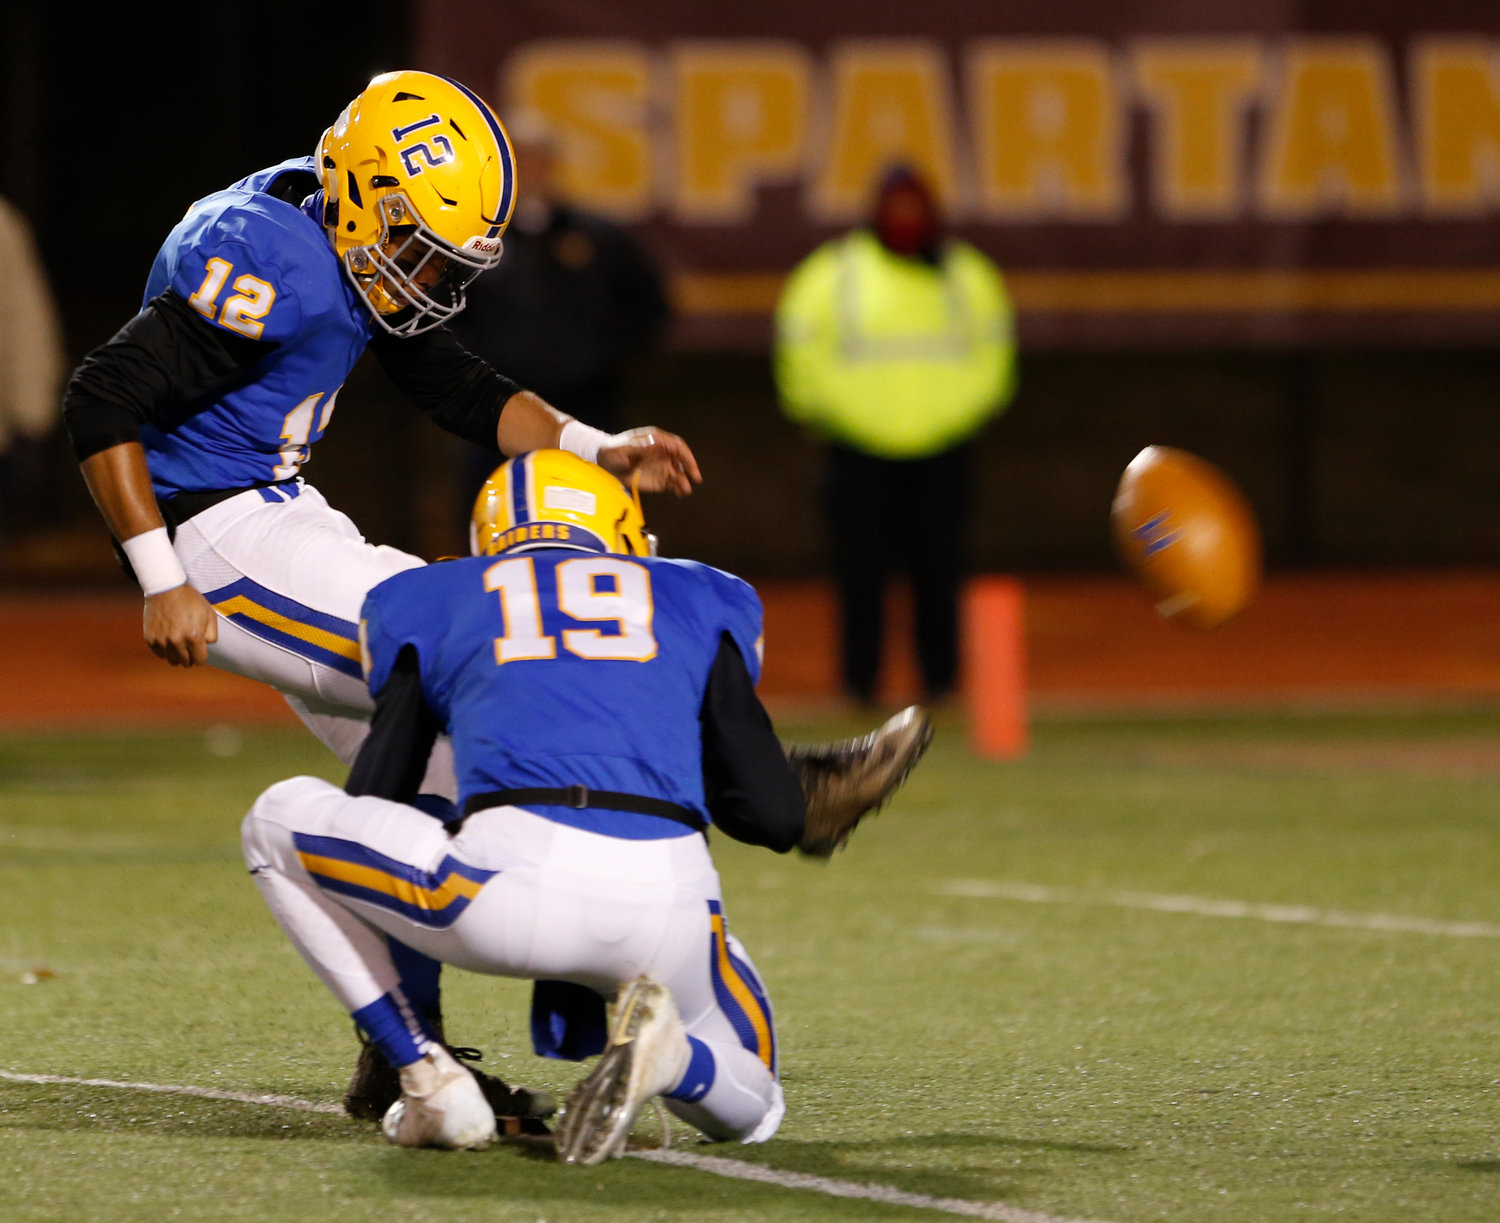 Avery Williams kicks an extra point during Middletown's 21-14 win over Conwell-Egan at Milton Hershey High School in the PIAA 3A state quarterfinals Nov. 23.